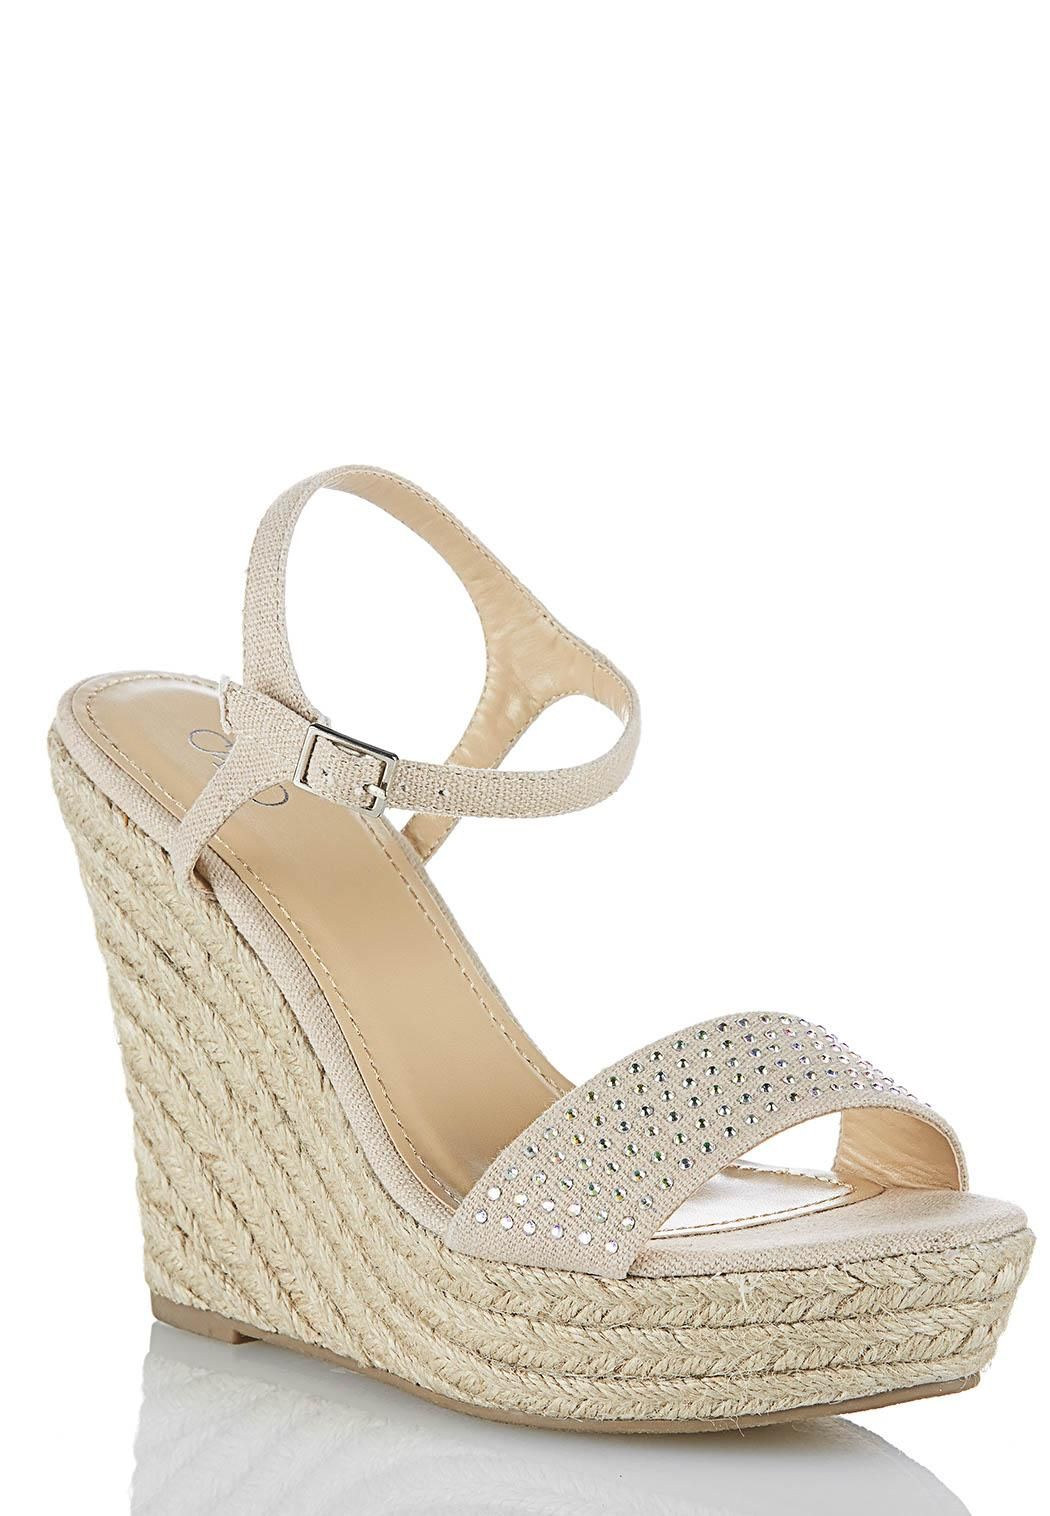 f72c71613 Crystal Canvas Rope Wedges Sandals Cato Fashions  CATOSUMMERSTYLE ...